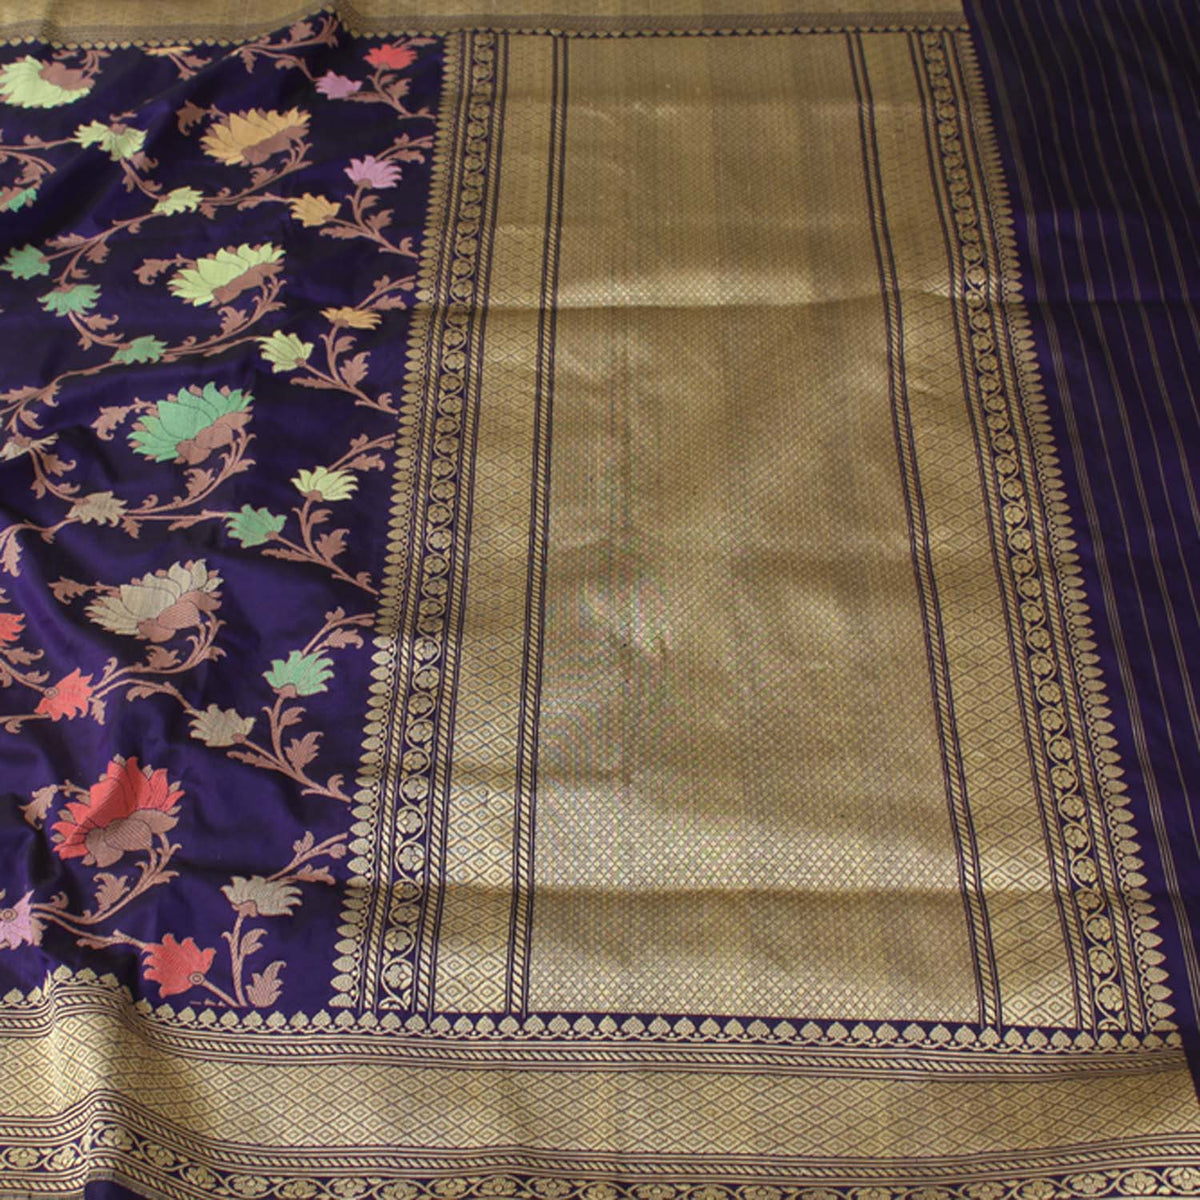 Royal Blue Pure Katan Silk Banarasi Handloom Saree - Tilfi - 2